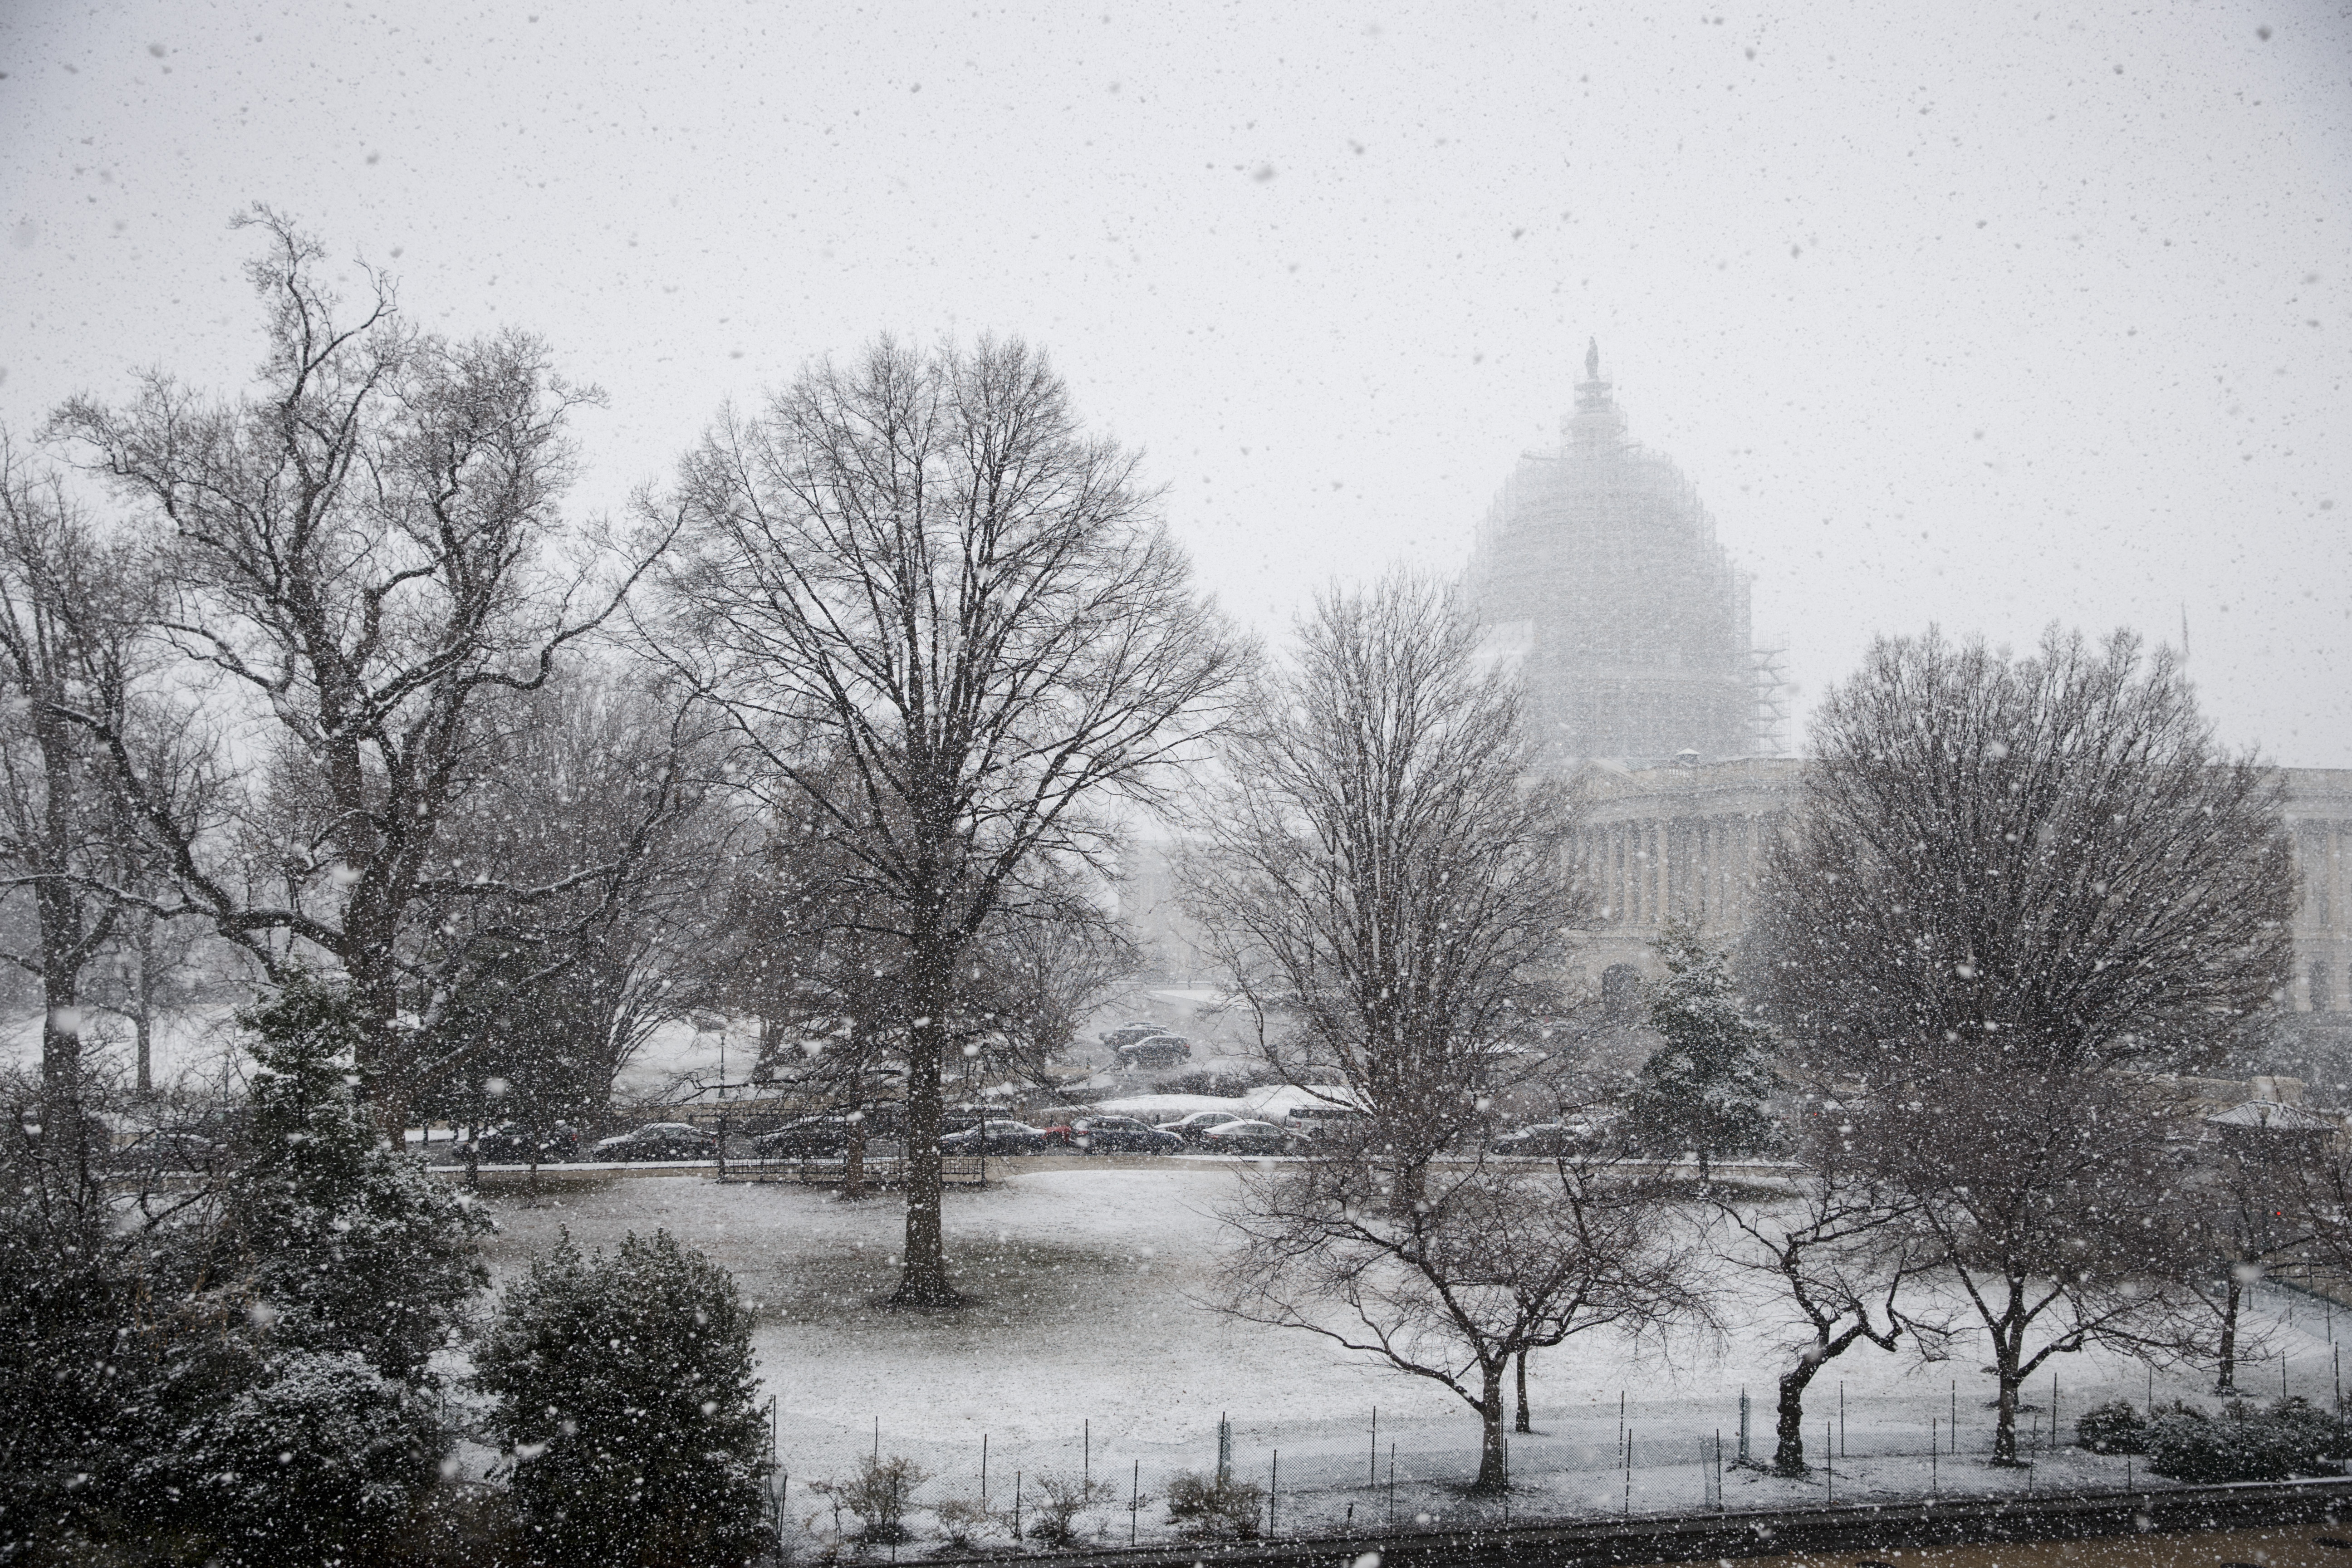 Blizzard may delay 911 response times